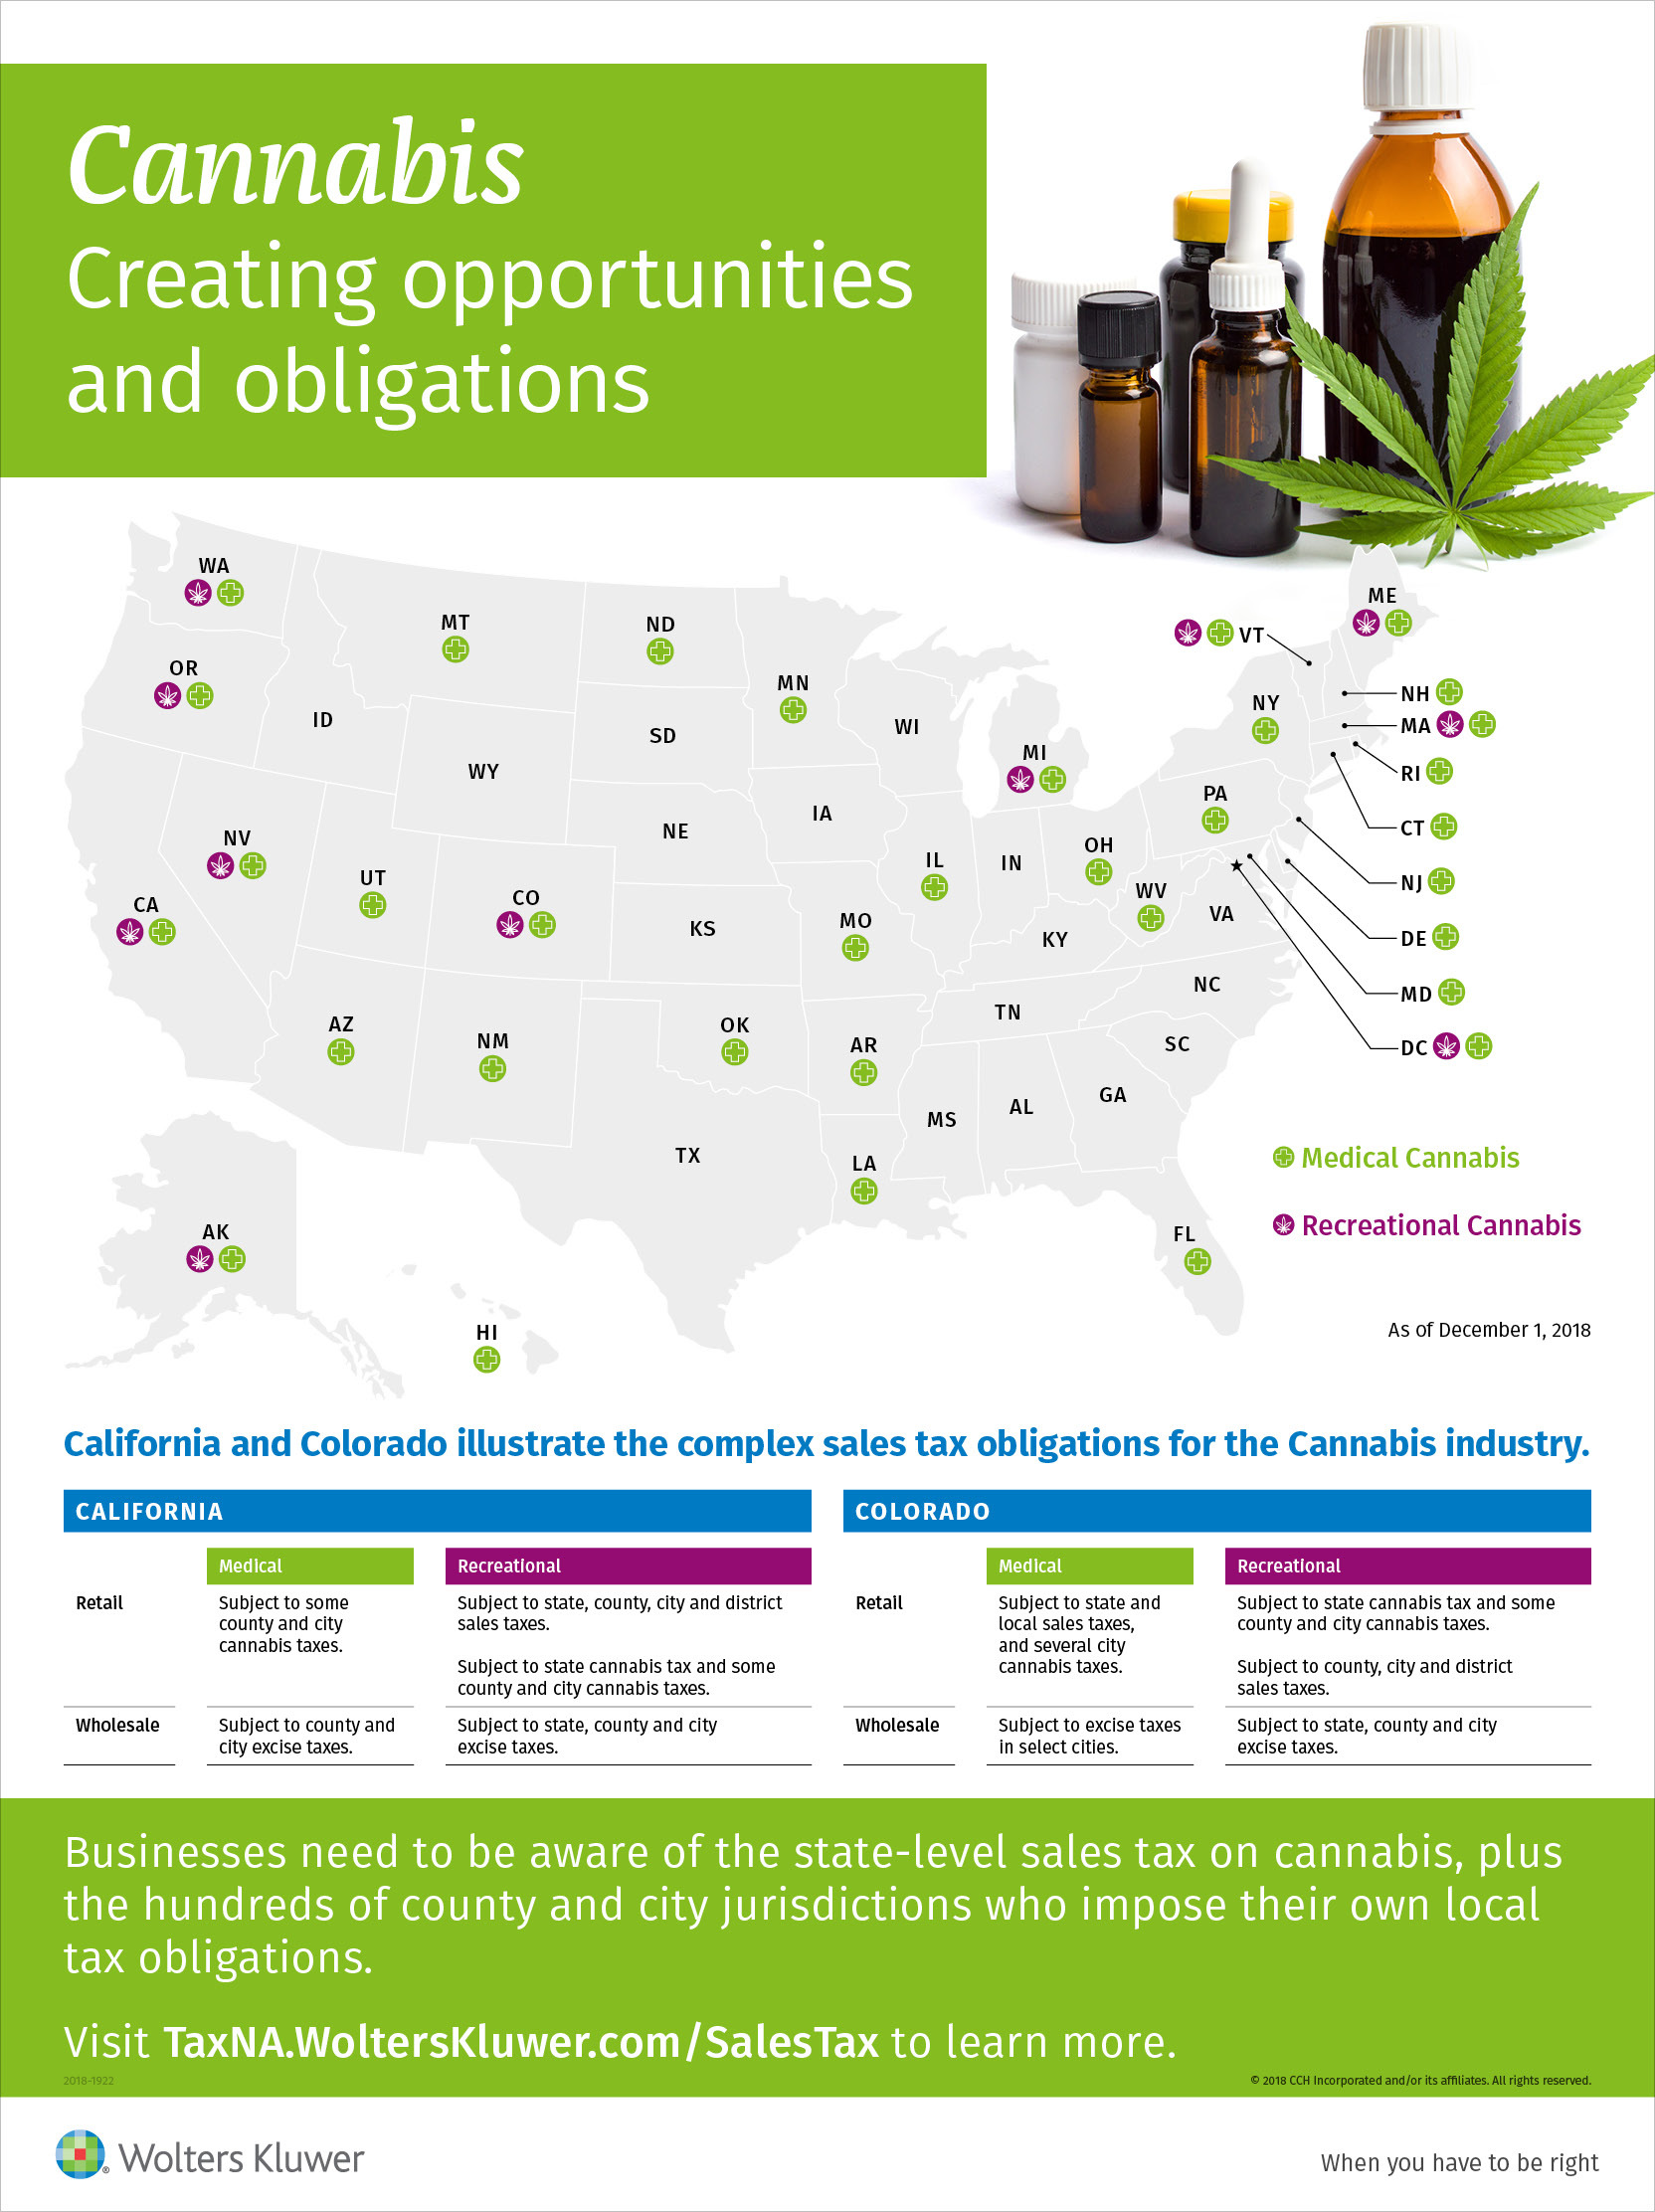 City Of Industry Sales Tax : industry, sales, Highs, Cannabis, Sales, Business